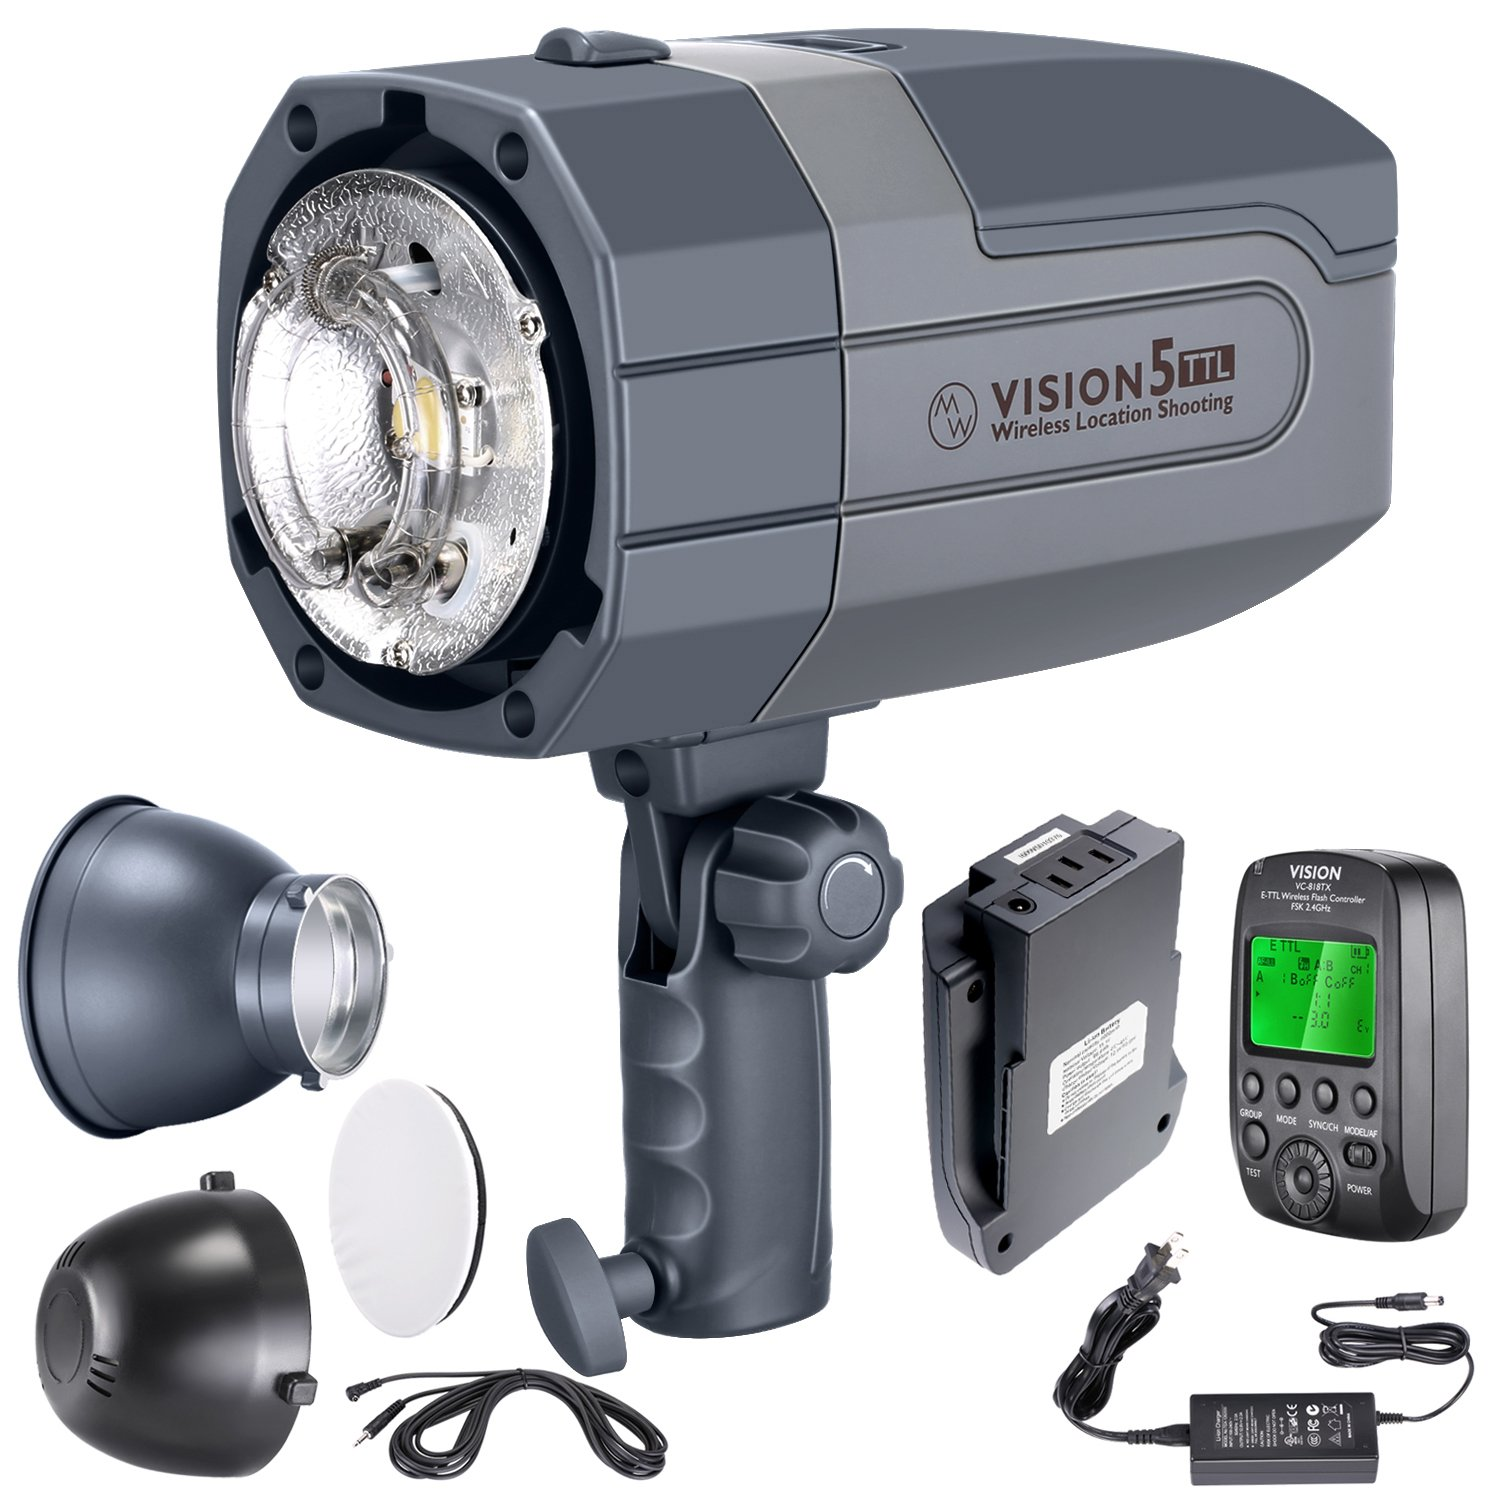 Neewer Vision5 400W TTL for NIKON HSS Outdoor Studio Flash Strobe with 2.4G System and Wireless Trigger,2 Packs Li-ion Battery(up to 500 Full Power Flashes),German Engineered,3.96 Pounds,Bowens Mount by Neewer (Image #8)